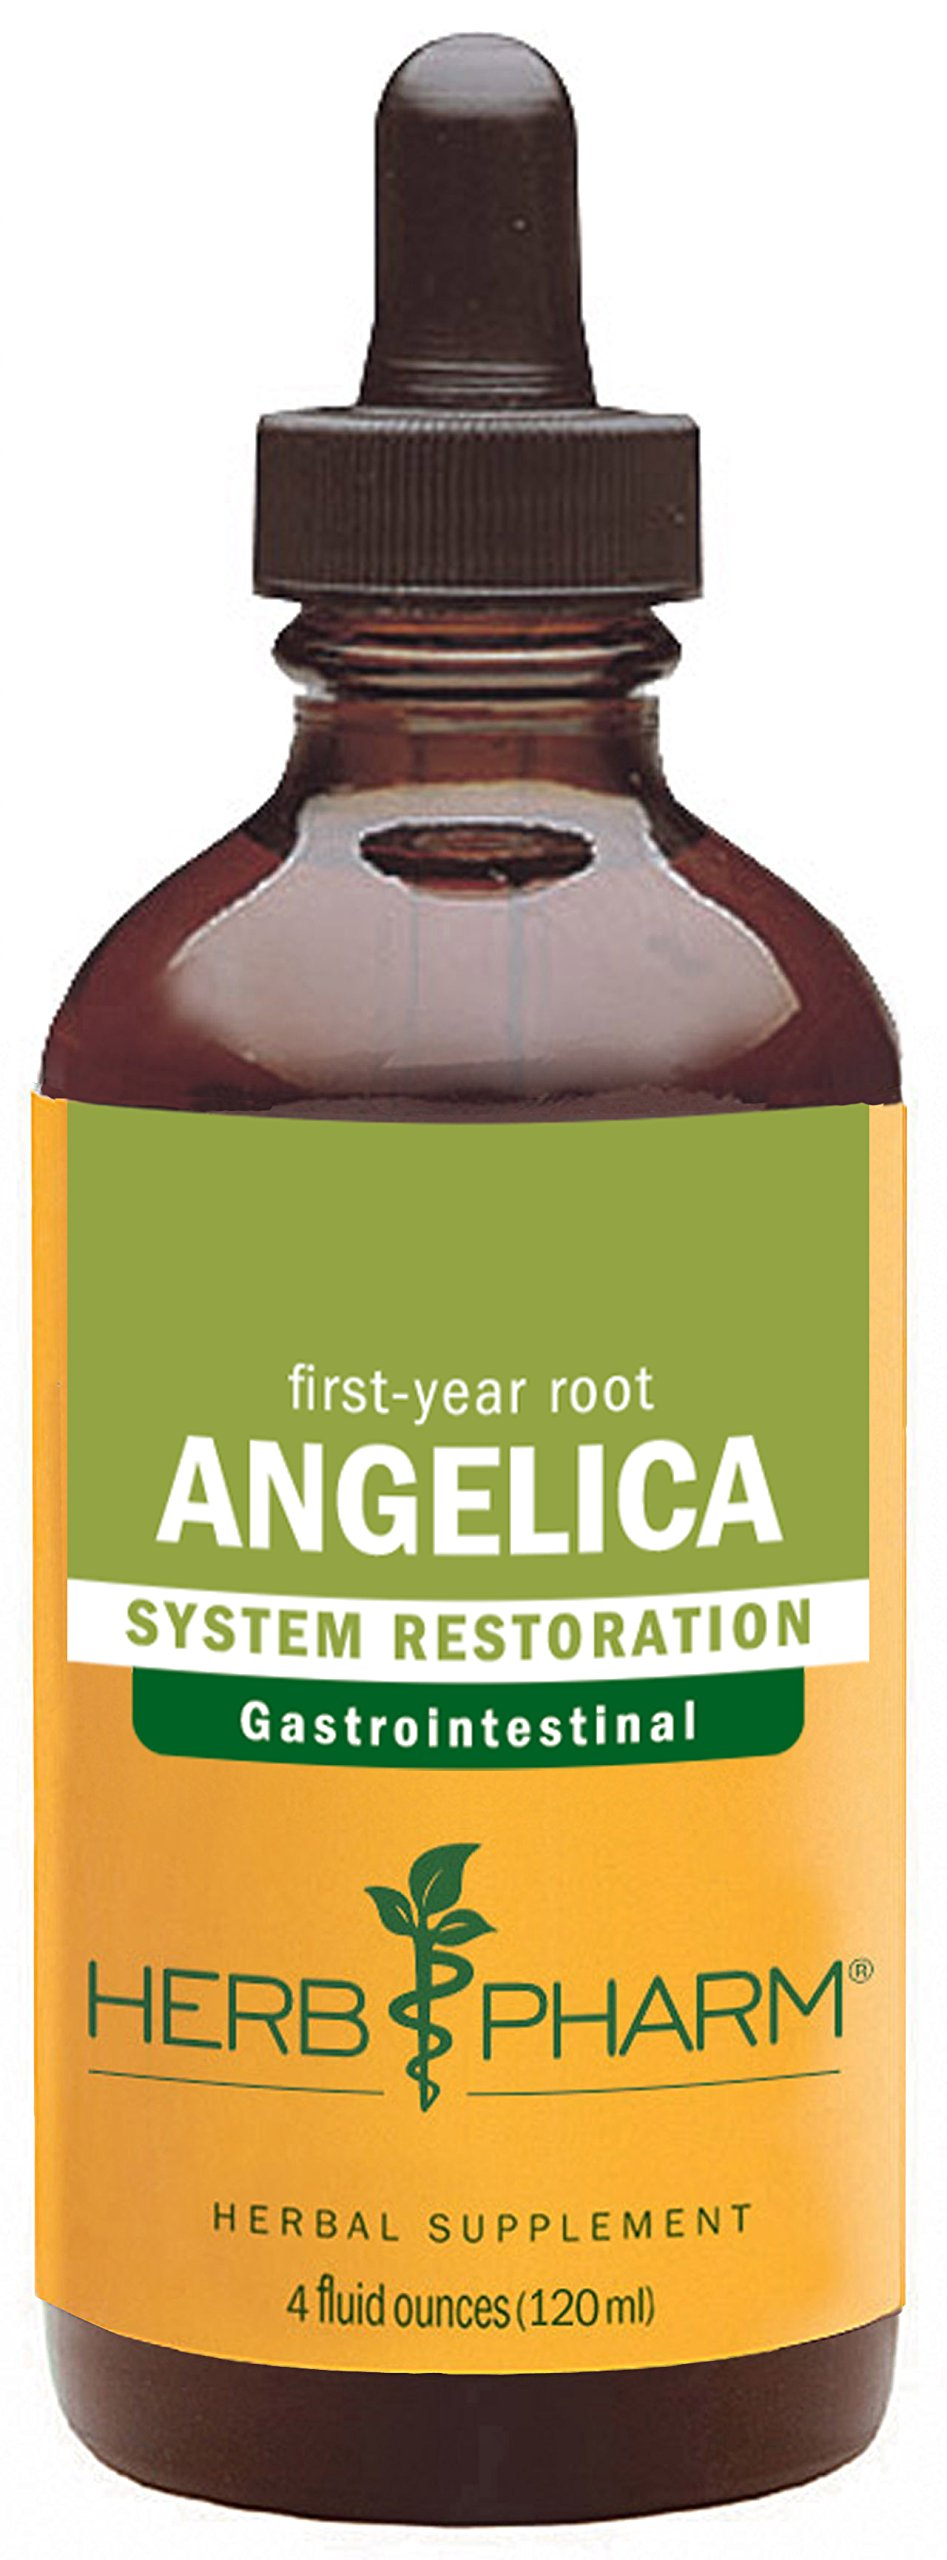 Herb Pharm Certified Organic Angelica Root Liquid Extract for Digestive Support - 4 Ounce